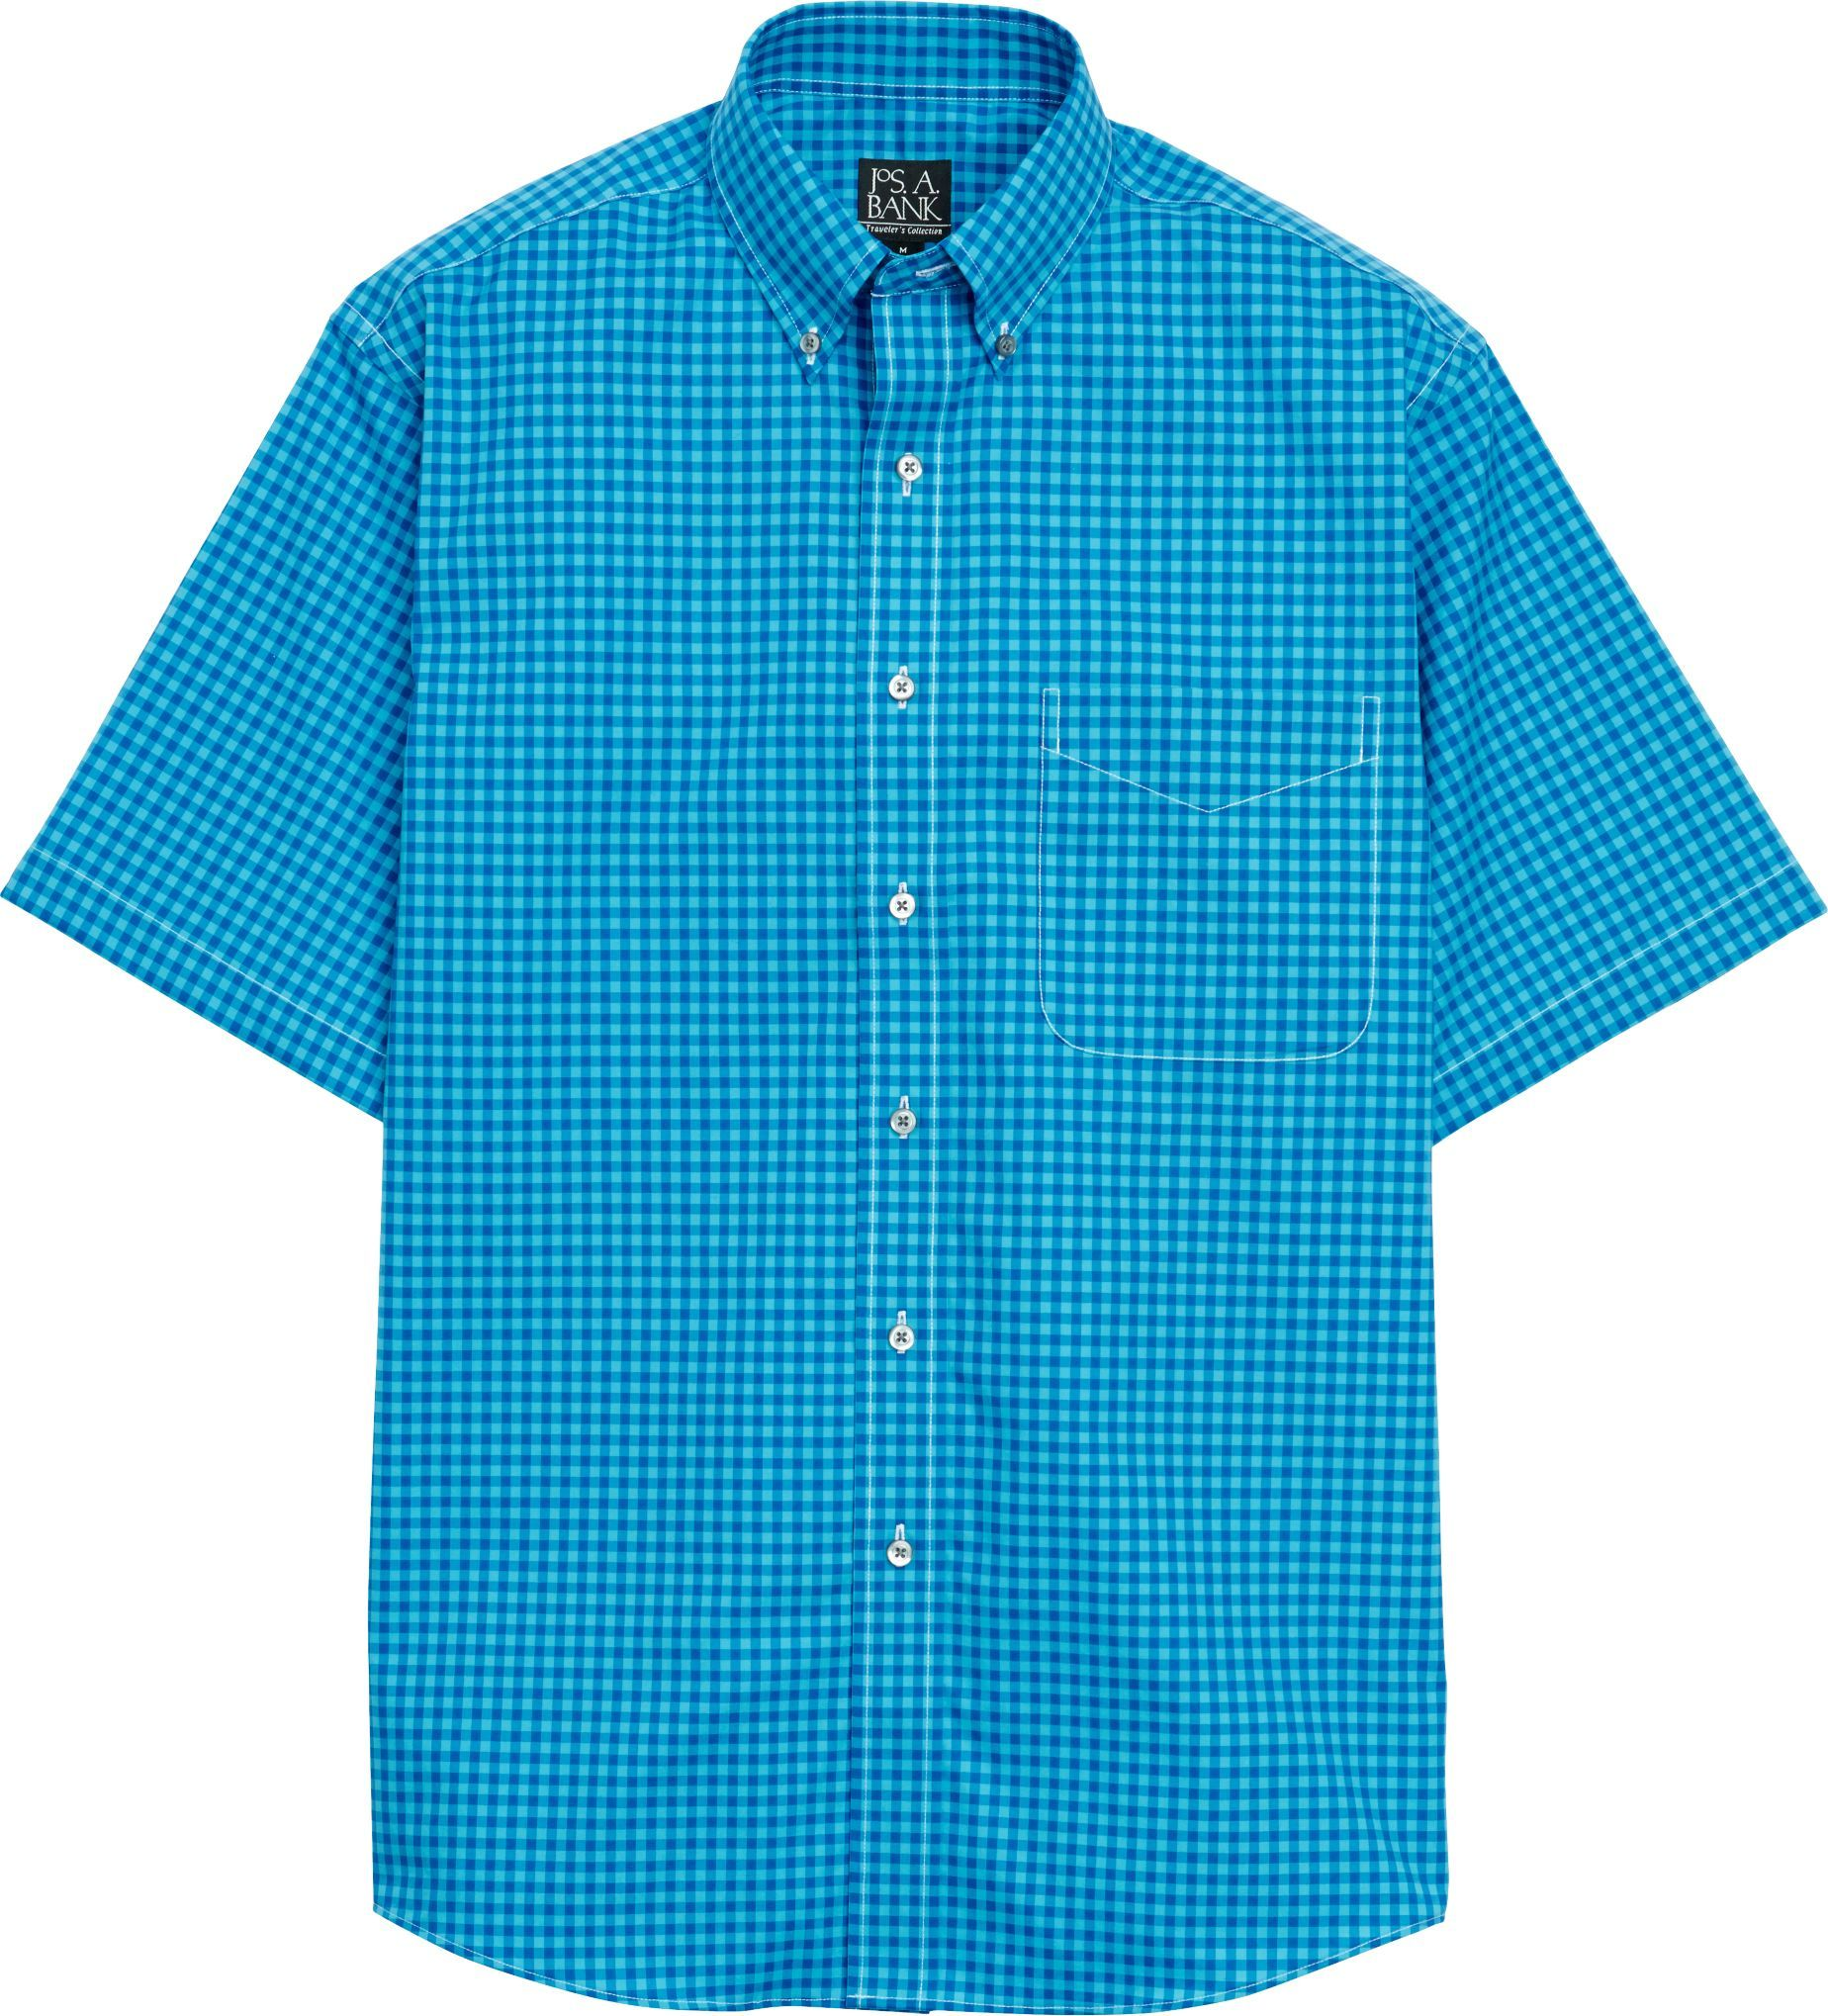 3637f7f1e92e Traveler Collection Traditional Fit Button-Down Collar Check Short-Sleeve  Sportshirt - Big   Tall CLEARANCE